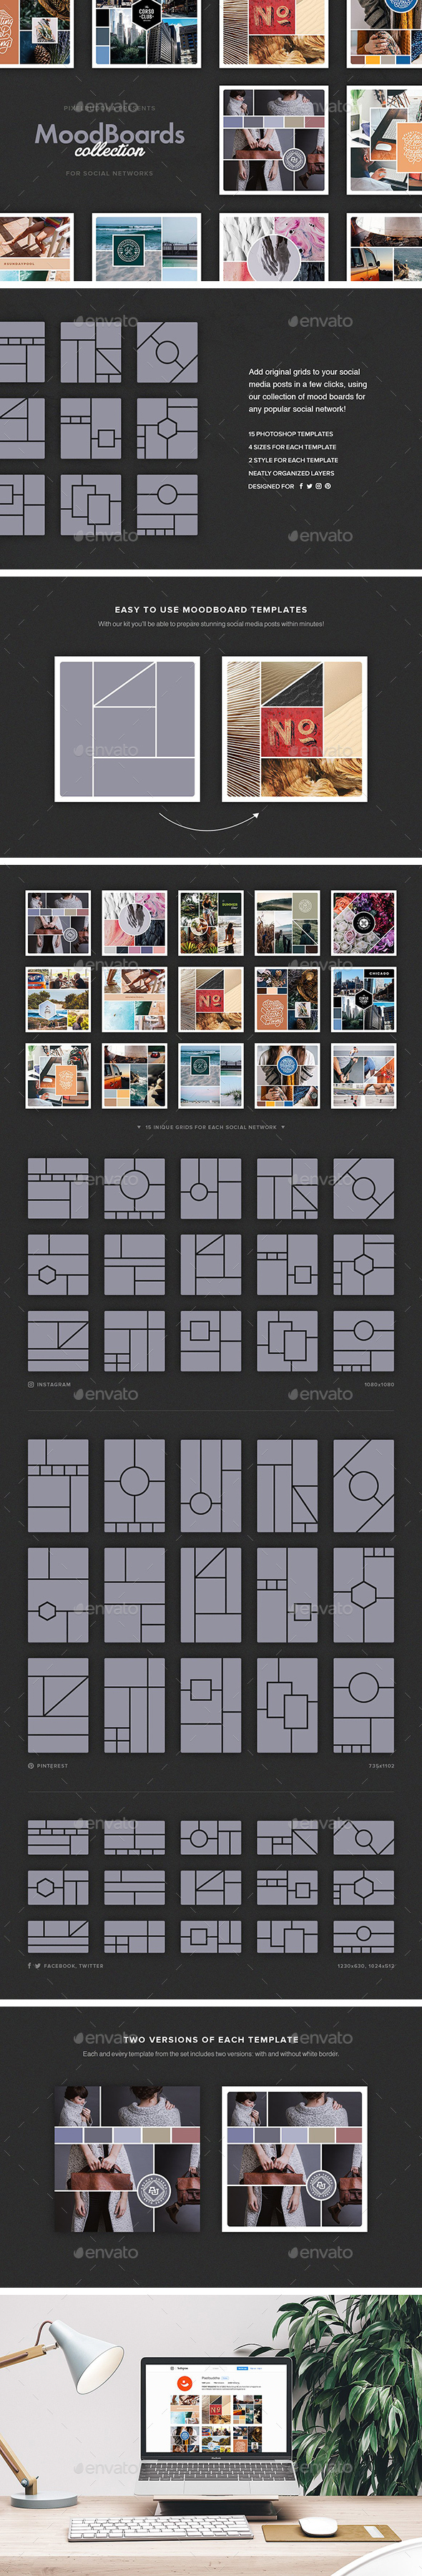 Mood Boards Collection - Social Media Web Elements